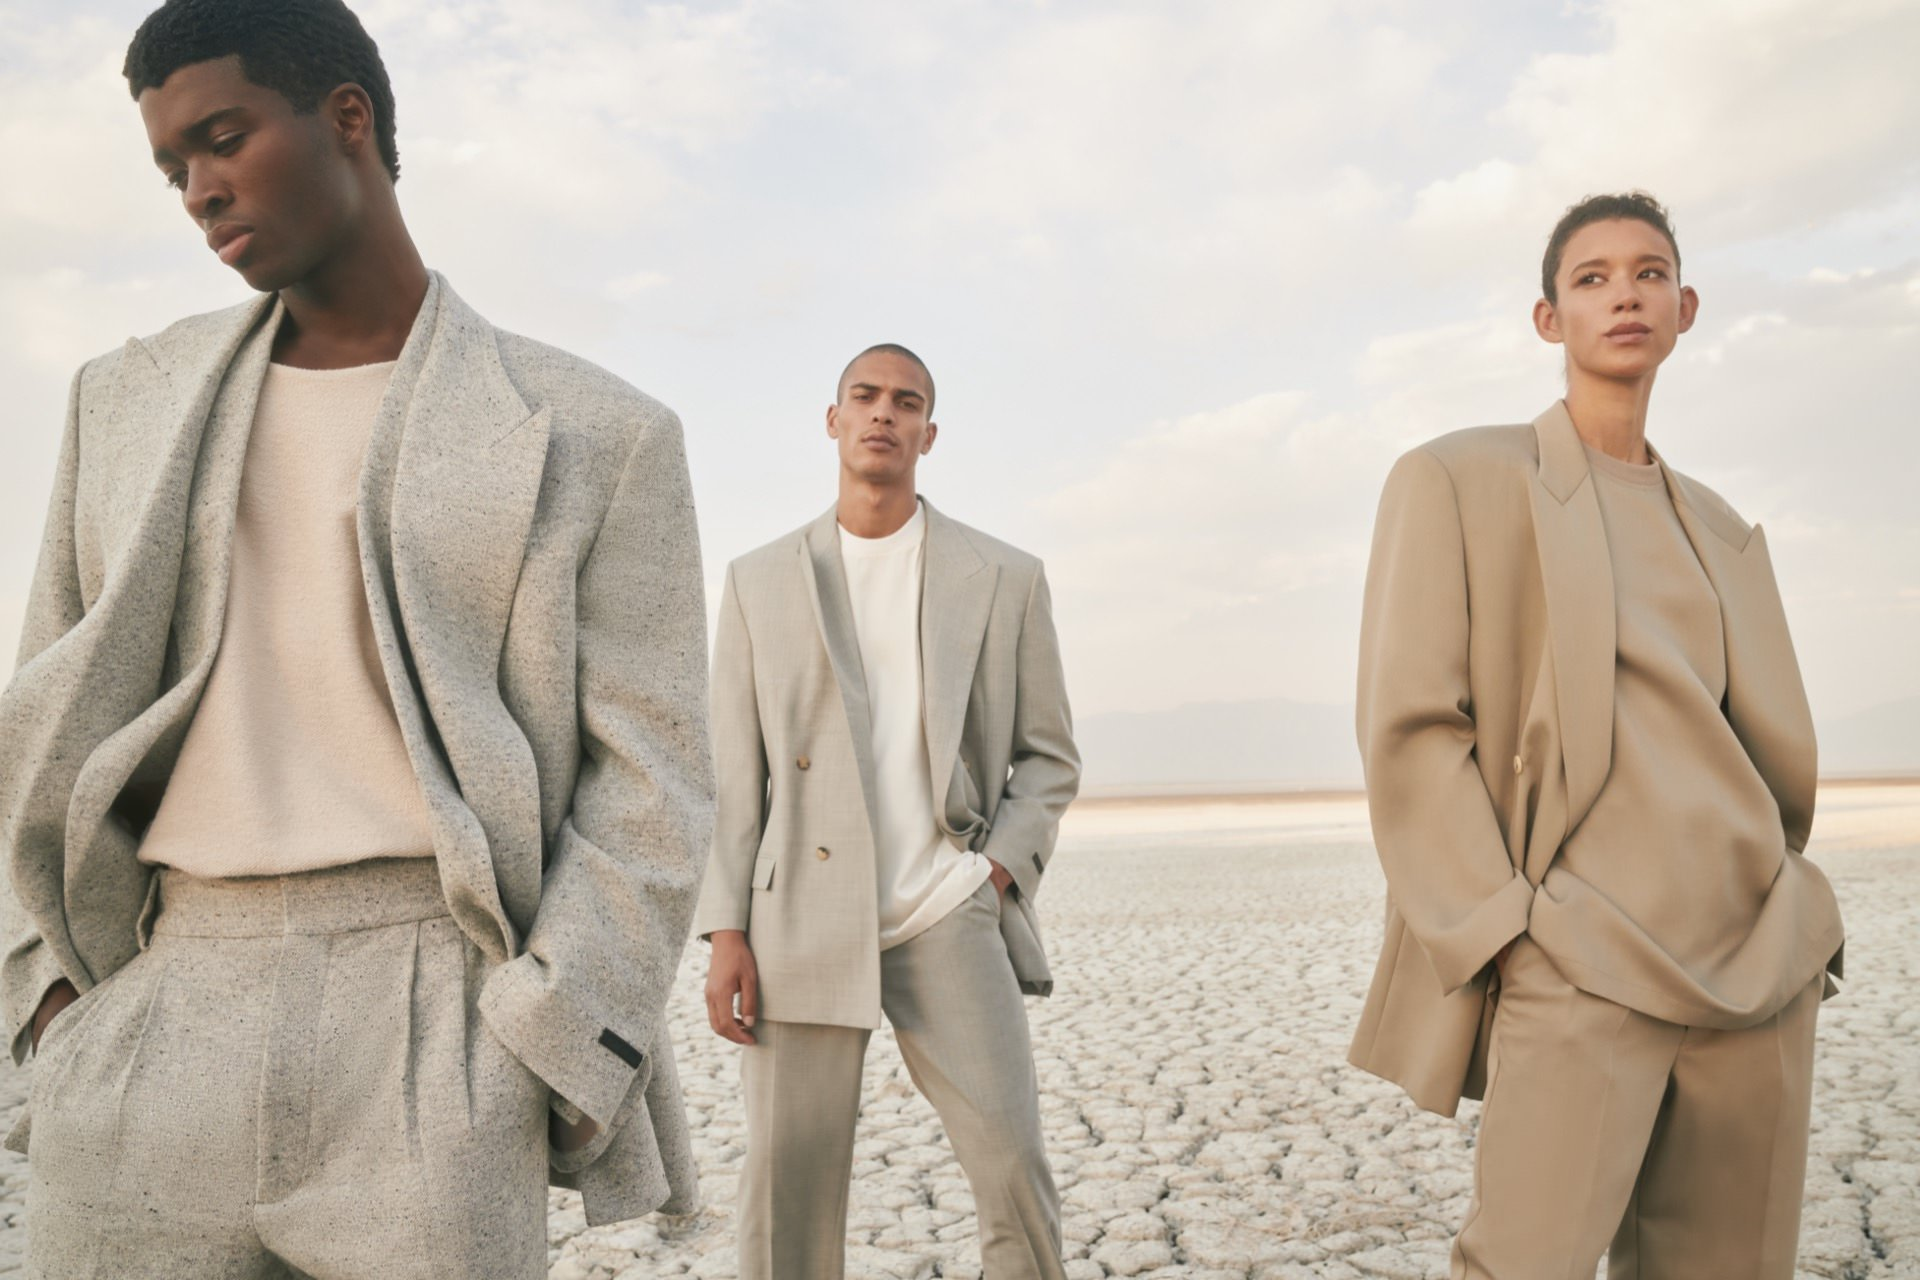 Fear Of God Autumn/Winter 2021 Campaign